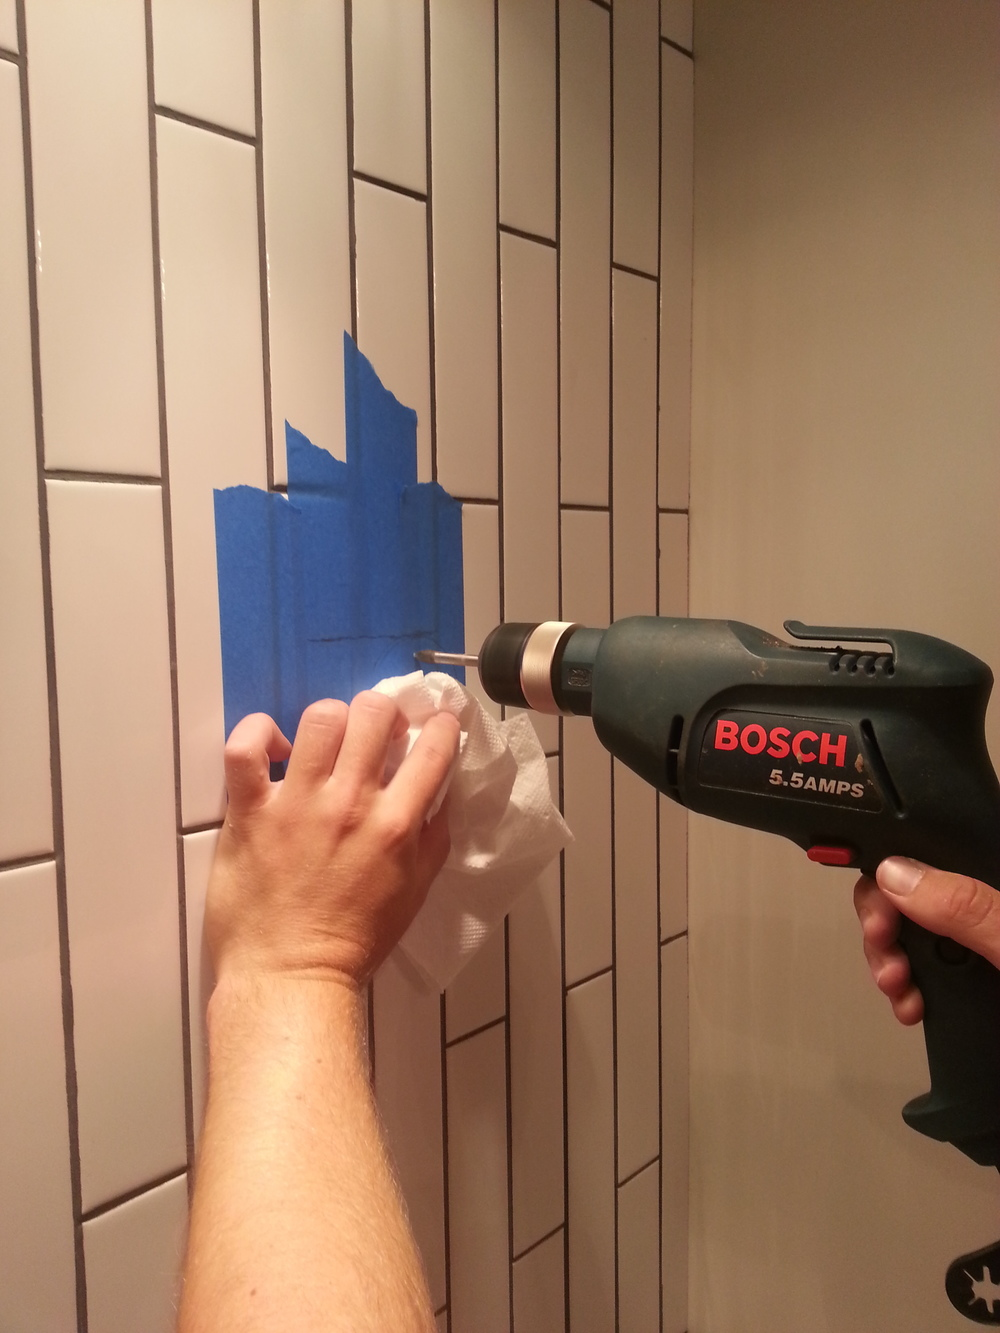 How To Drill Through Bathroom Tiles